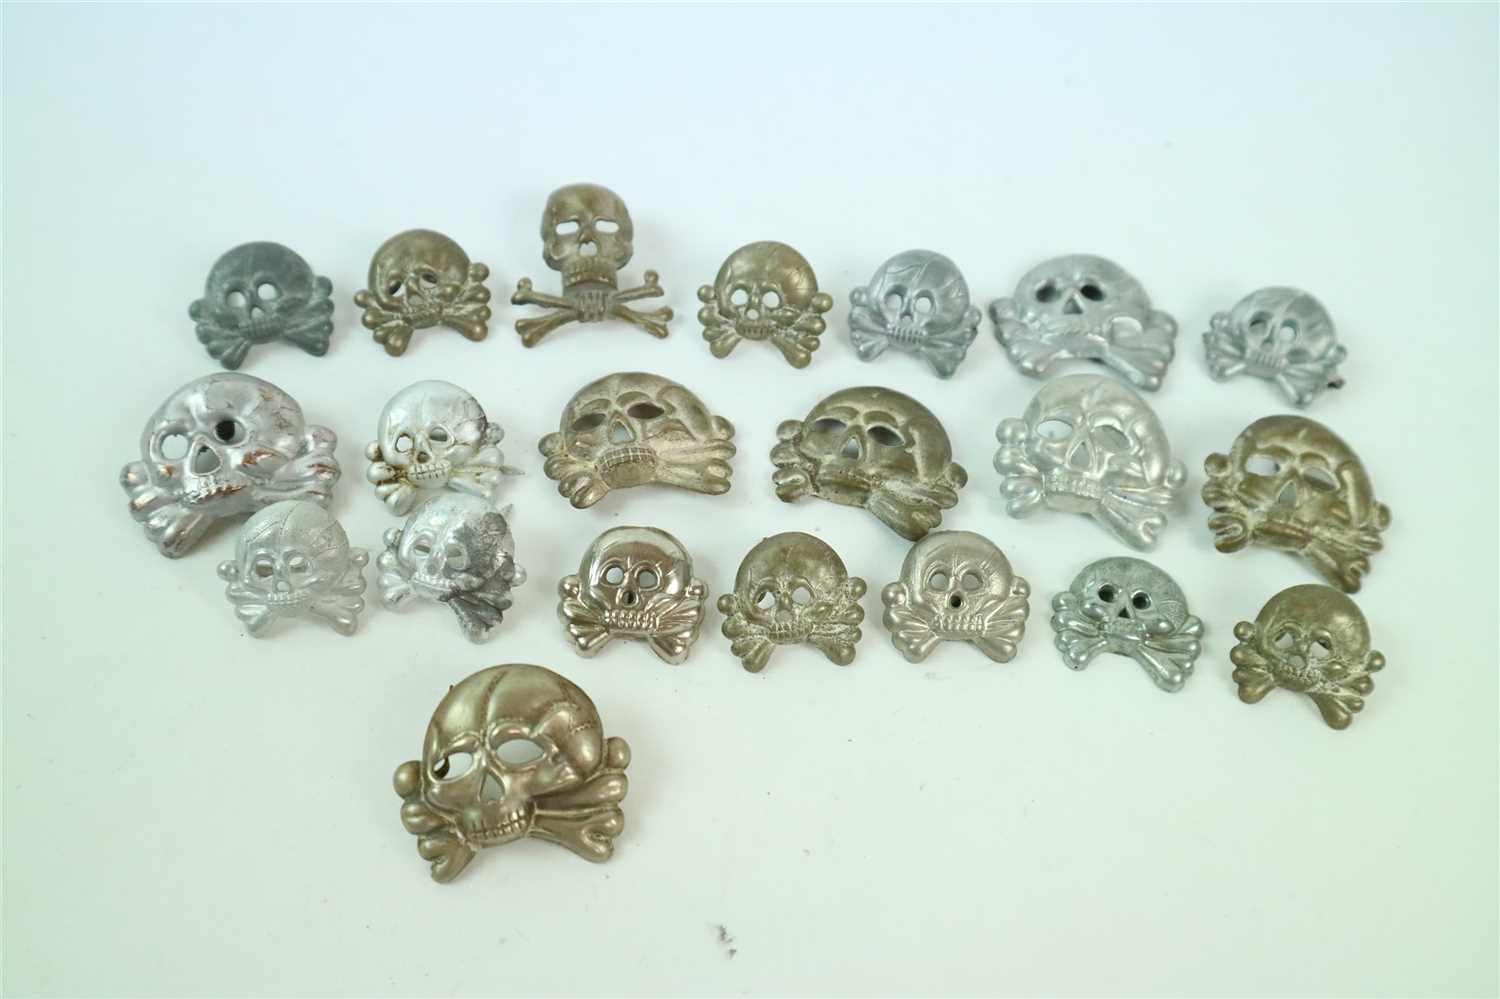 581 - Twenty one post-war SS-style skull badges